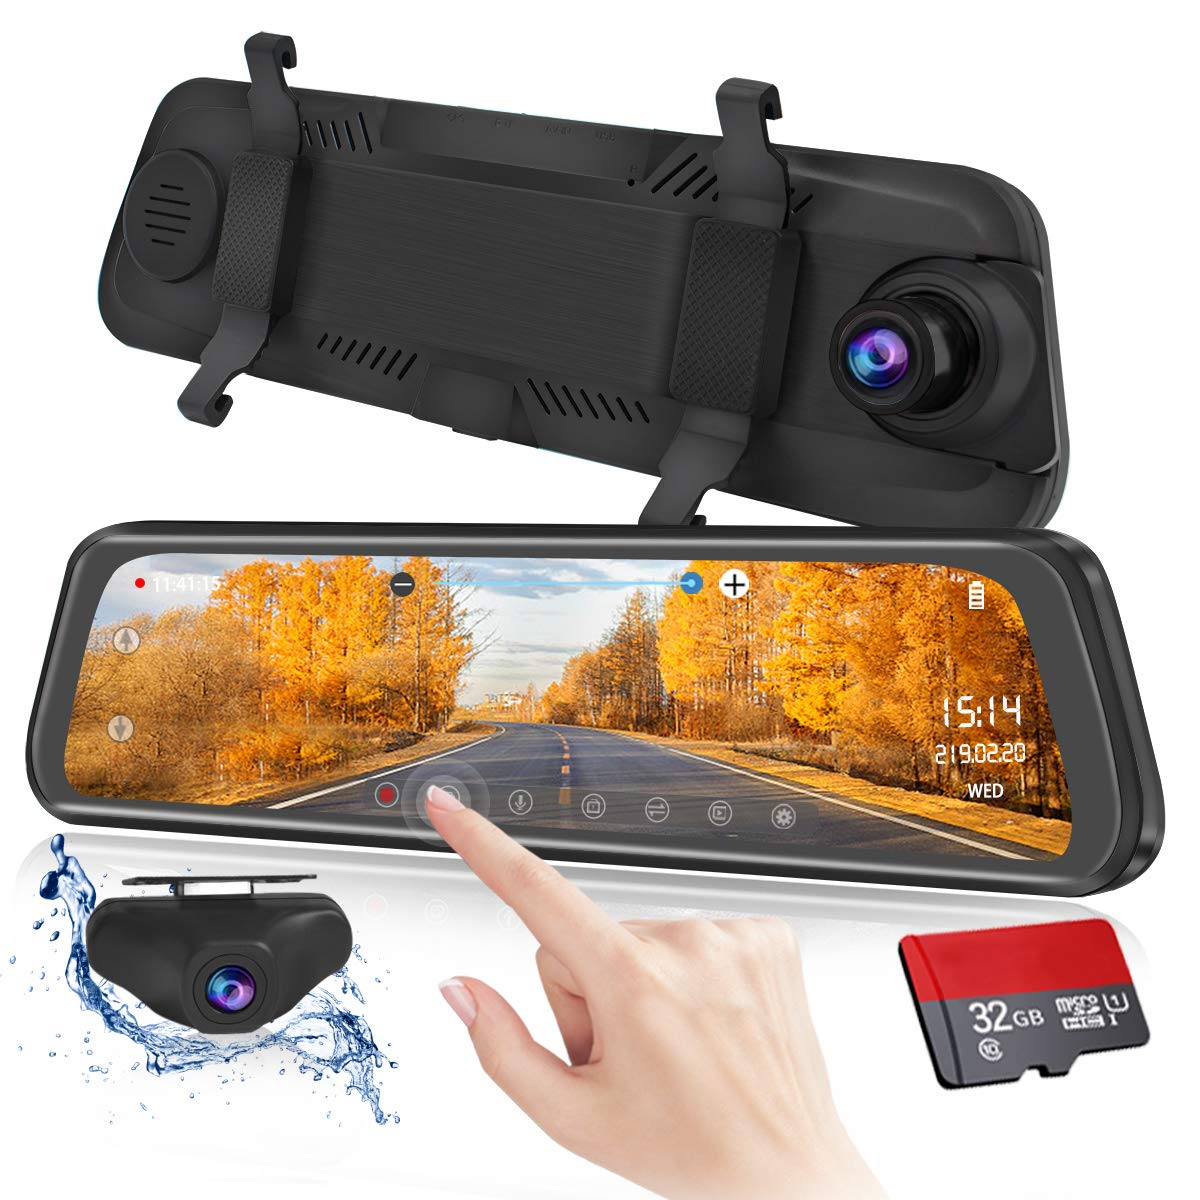 Mirror Dash Cam 9.88 inch Full Touch Screen Car Backup Camera Dual Recording HD Front 1080P 170° Wide Angle 1080P Rear View Camera 150° URVOLAX Night Vision,24-Hour Parking,GPS, SD Card by URVOLAX